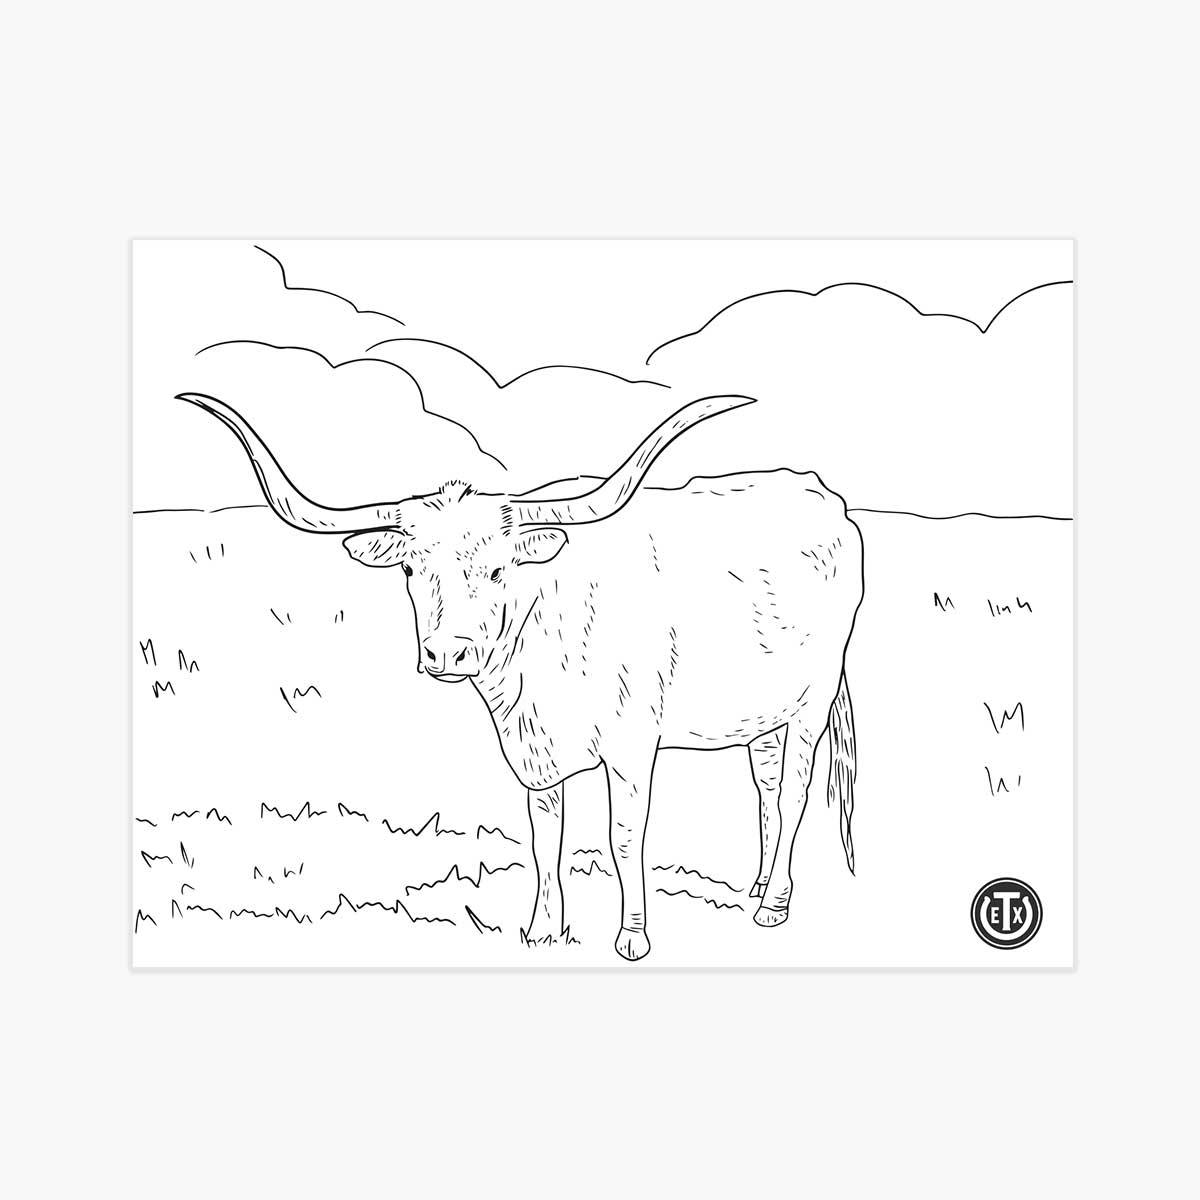 texas longhorns coloring pages texas longhorn steer coloring page cow coloring pages texas longhorns pages coloring